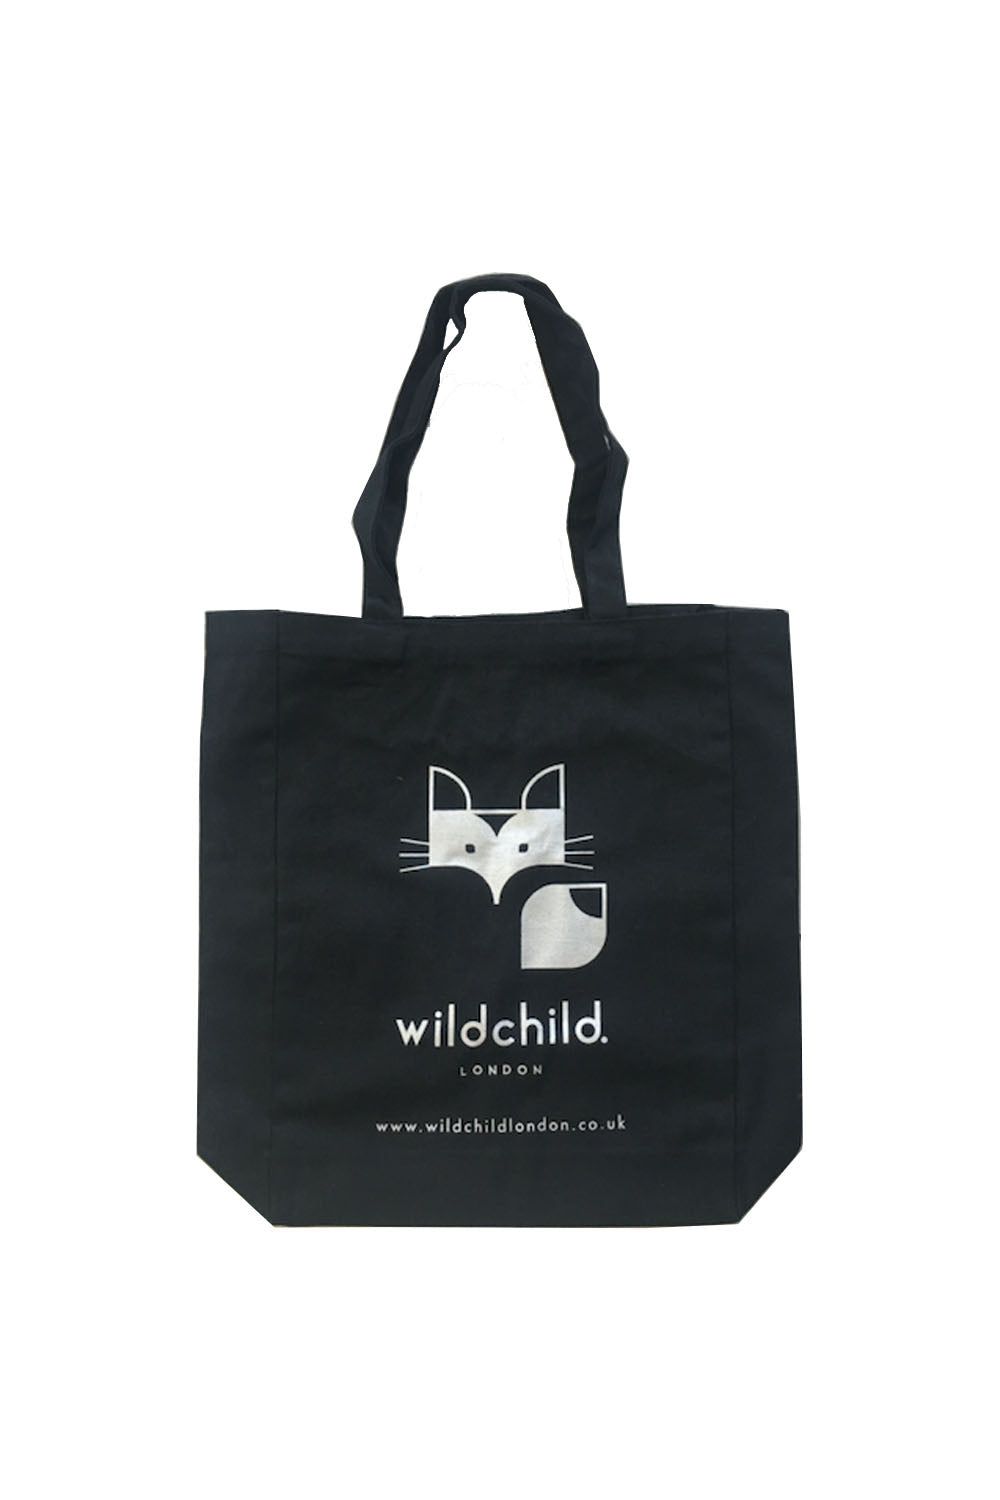 reusable high quality black & silver tote bag